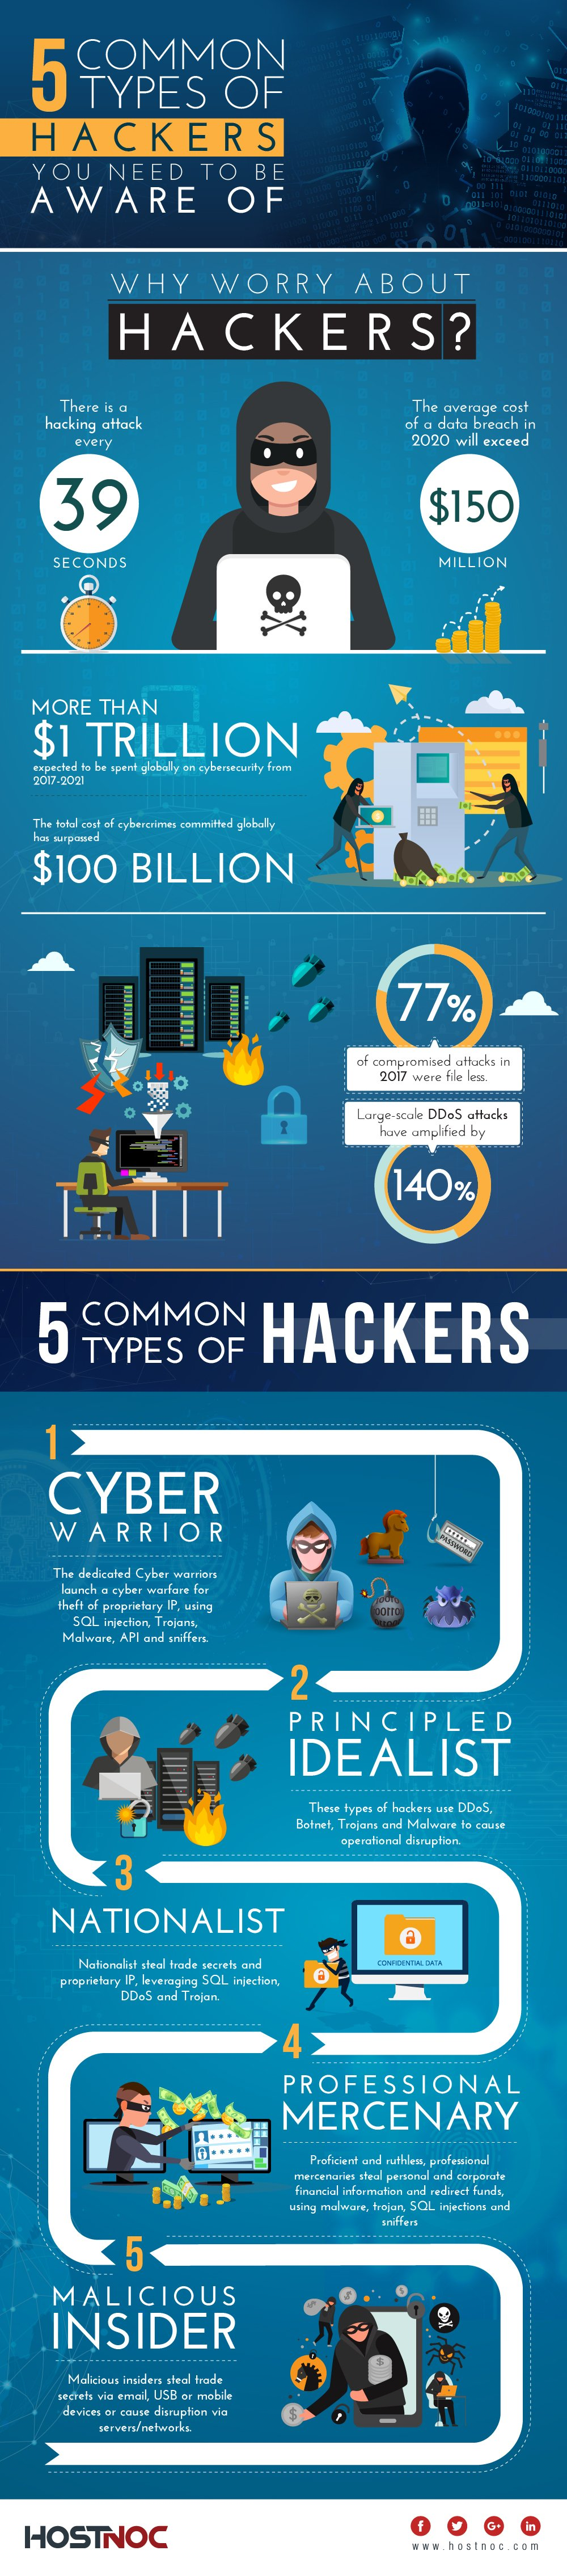 Common Types of Hackers